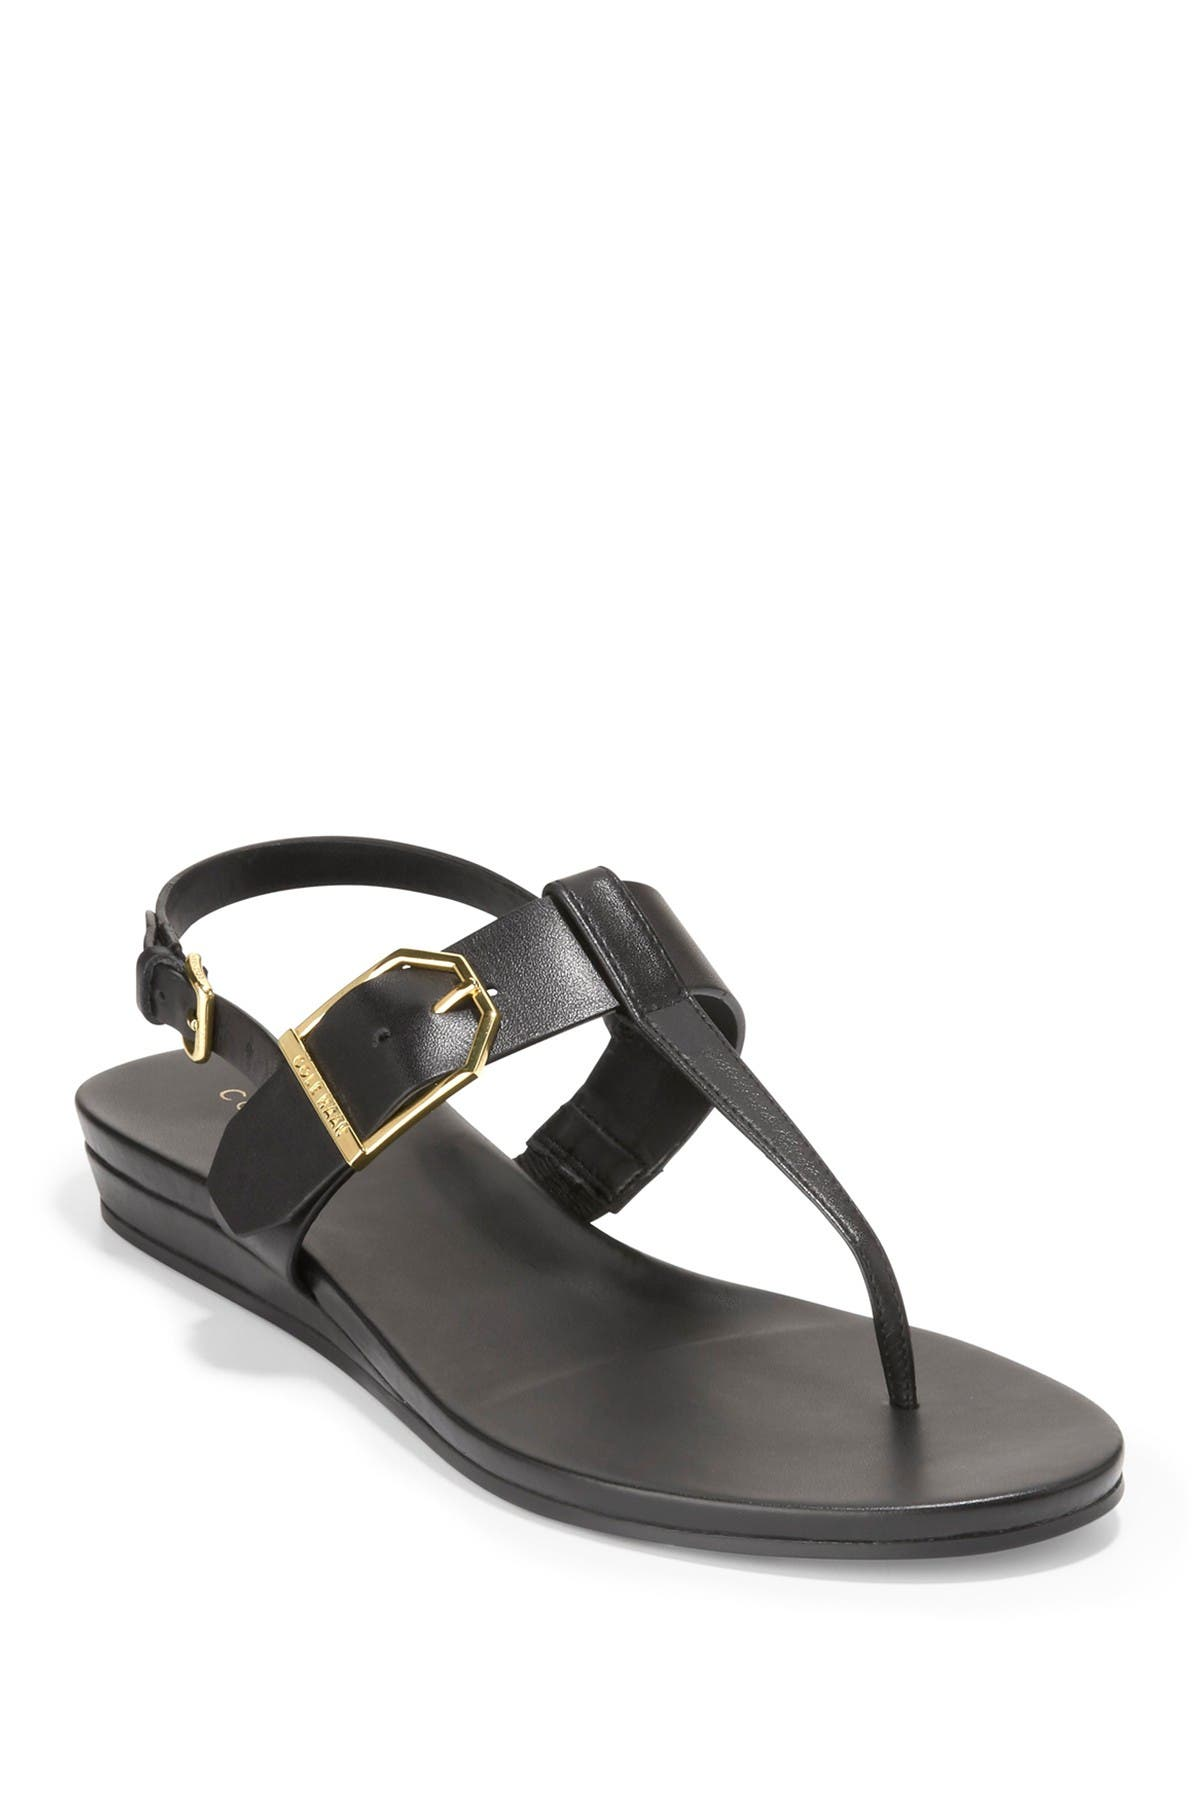 Image of Cole Haan Francine Demi Wedge Sandal